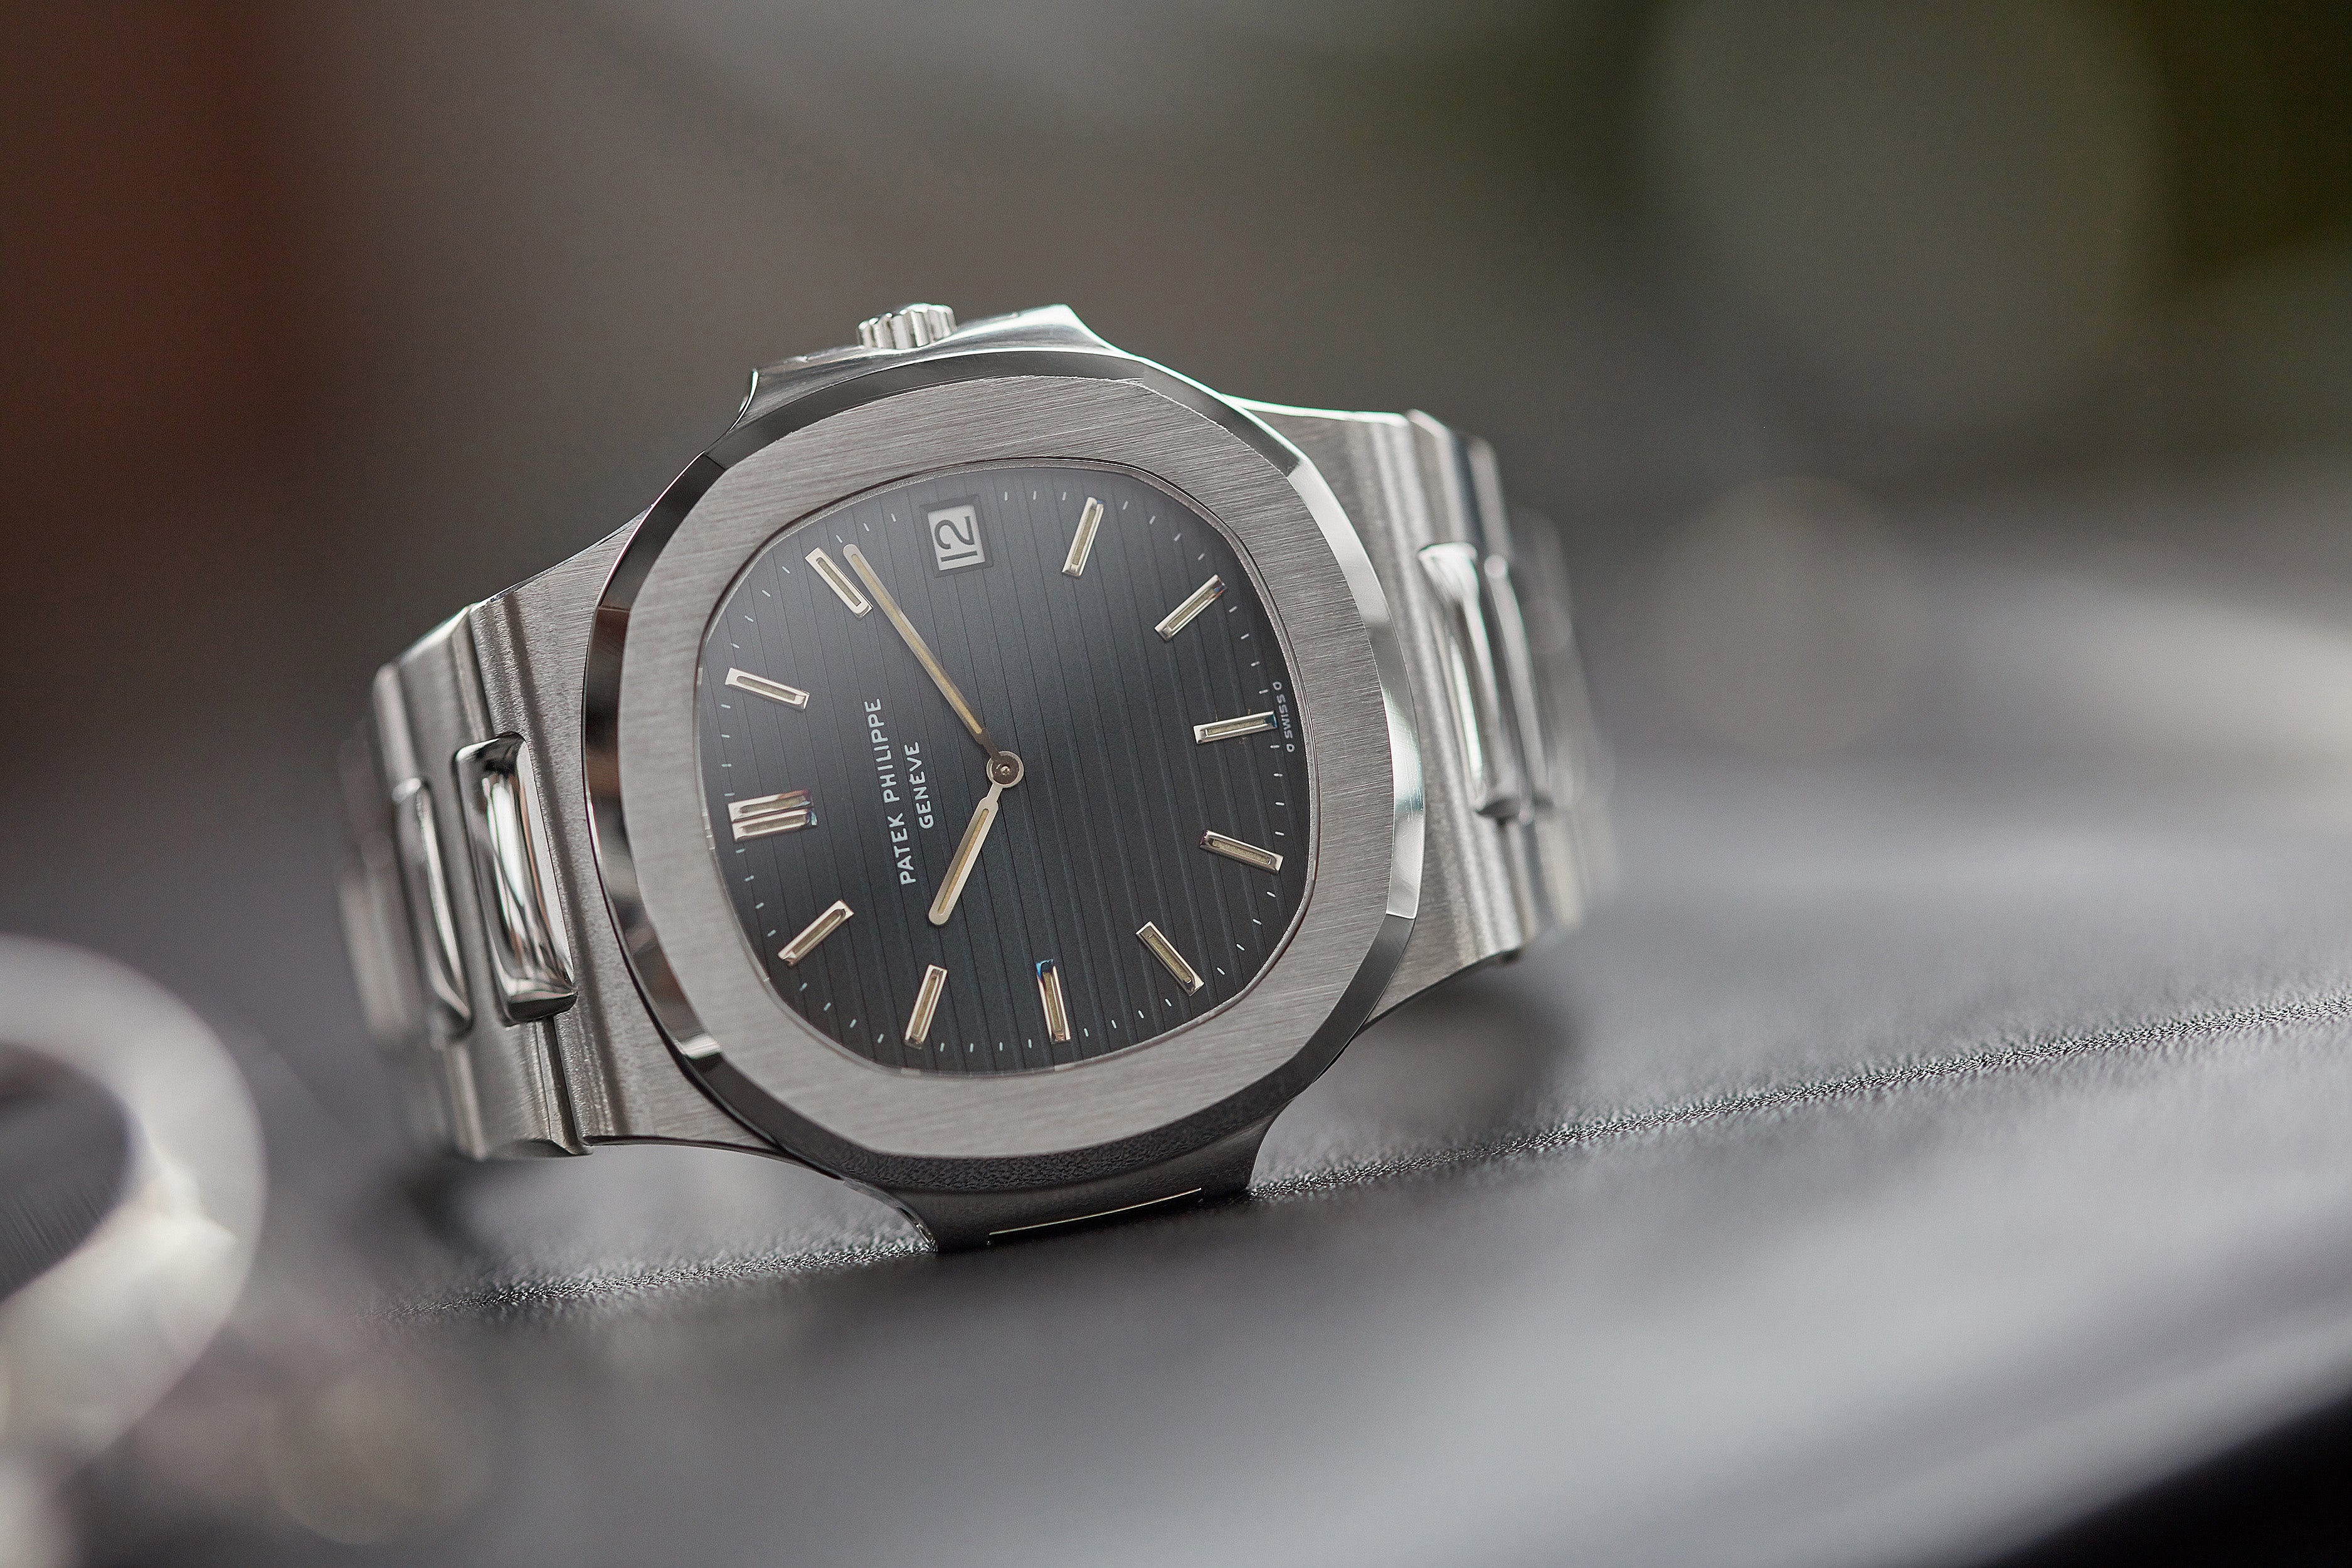 rare Patek Philippe Nautilus 3700-001A full set vintage watch for sale online at A Collected Man London UK specialist of rare watches